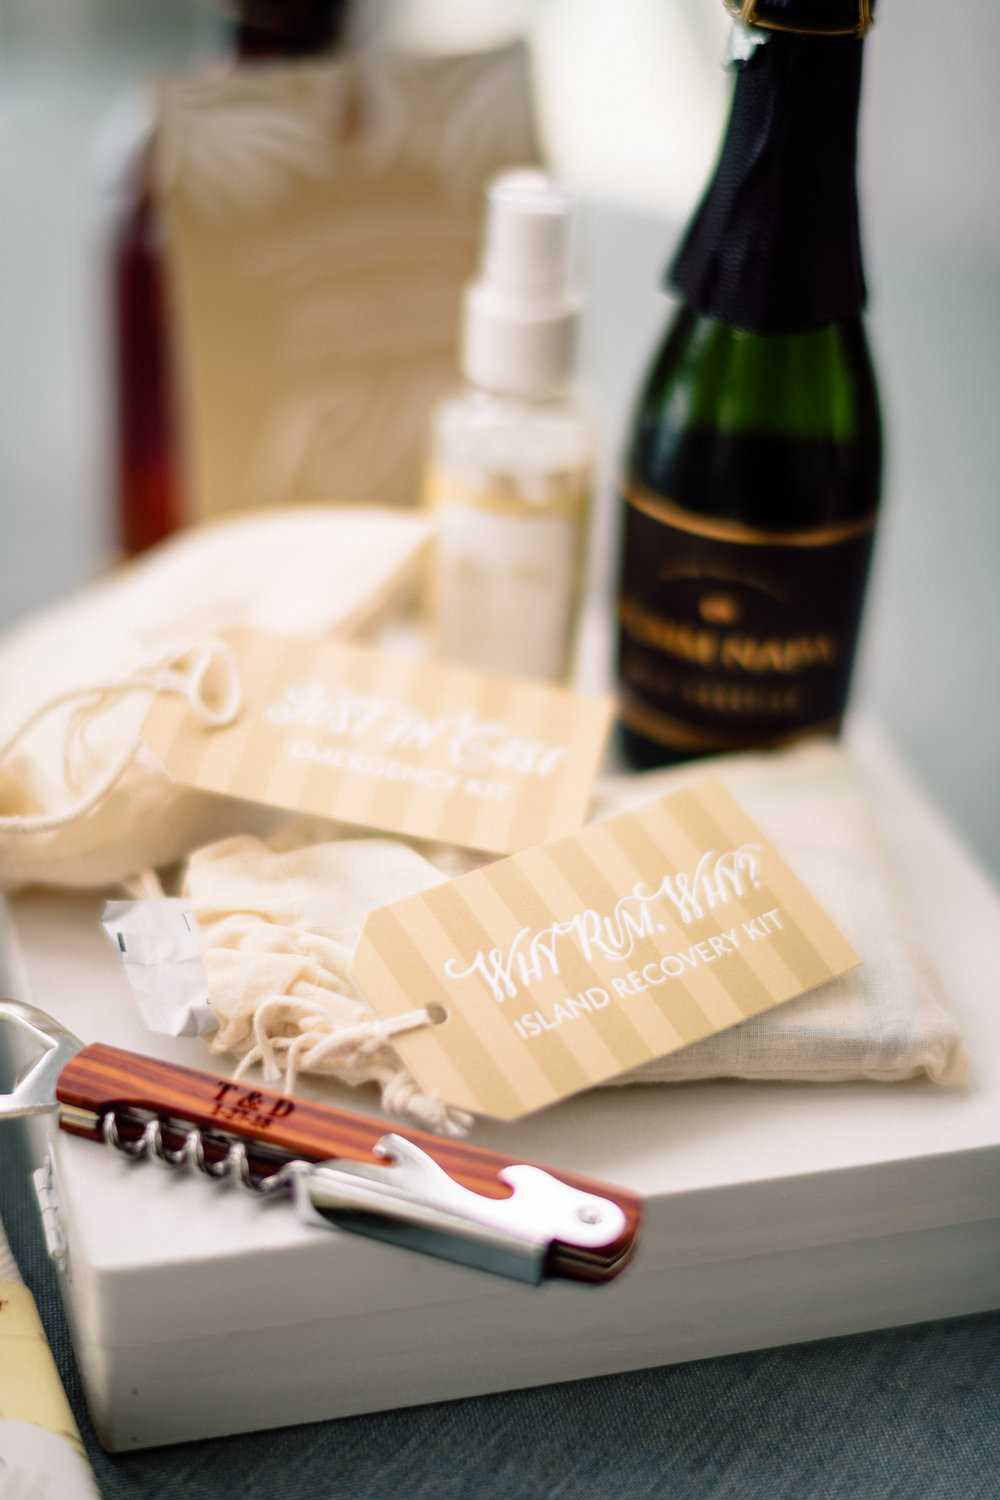 Welcome Kit Hangover Kit Wedding Photography Matt Steeves.jpg